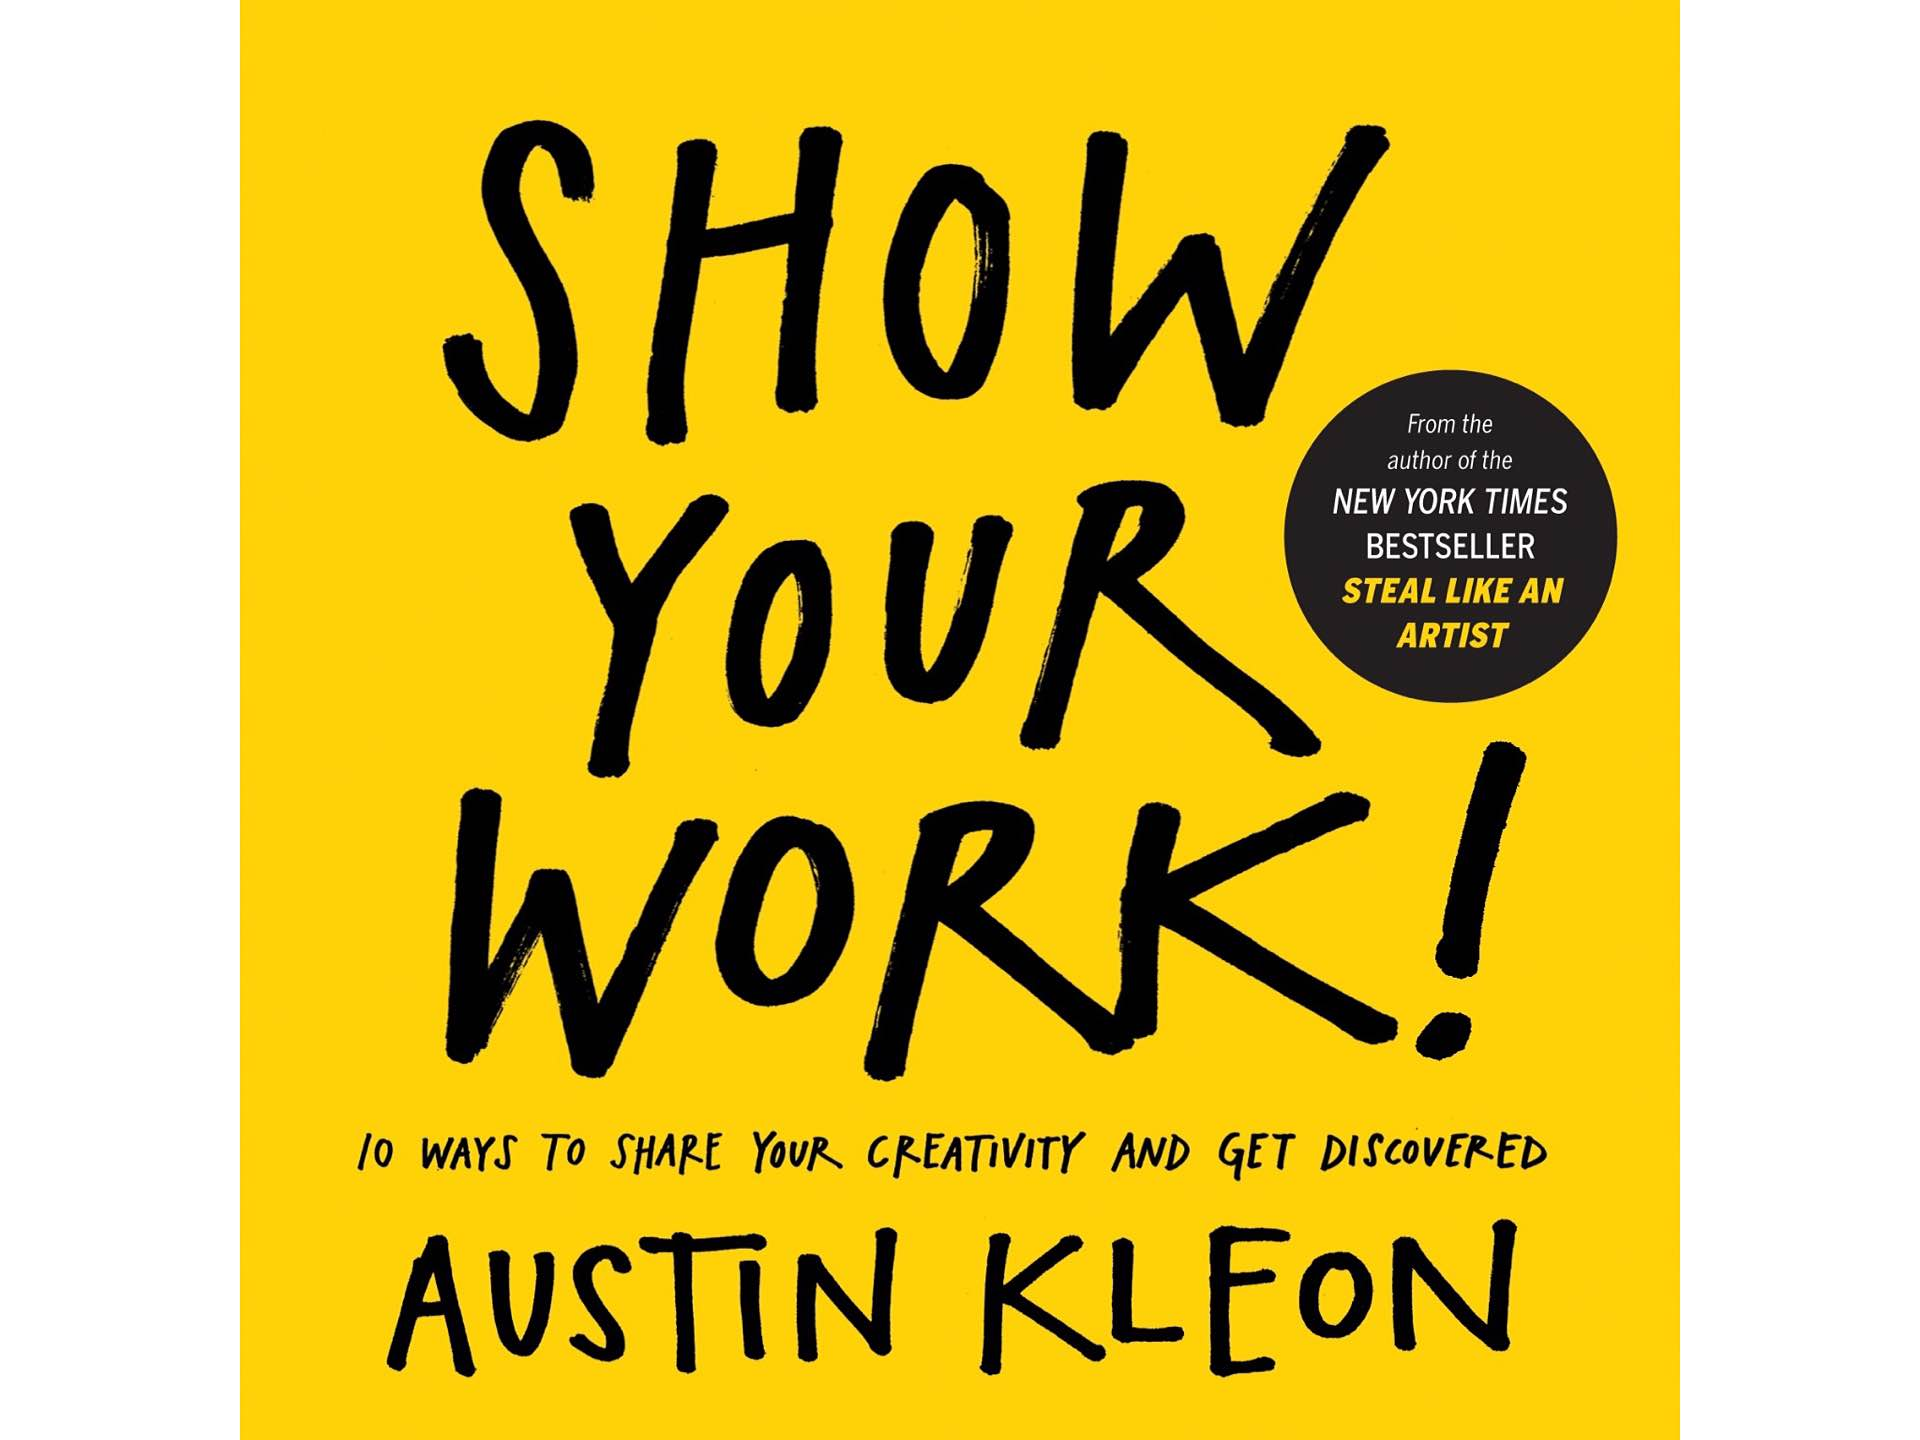 Show Your Work by Austin Kleon.